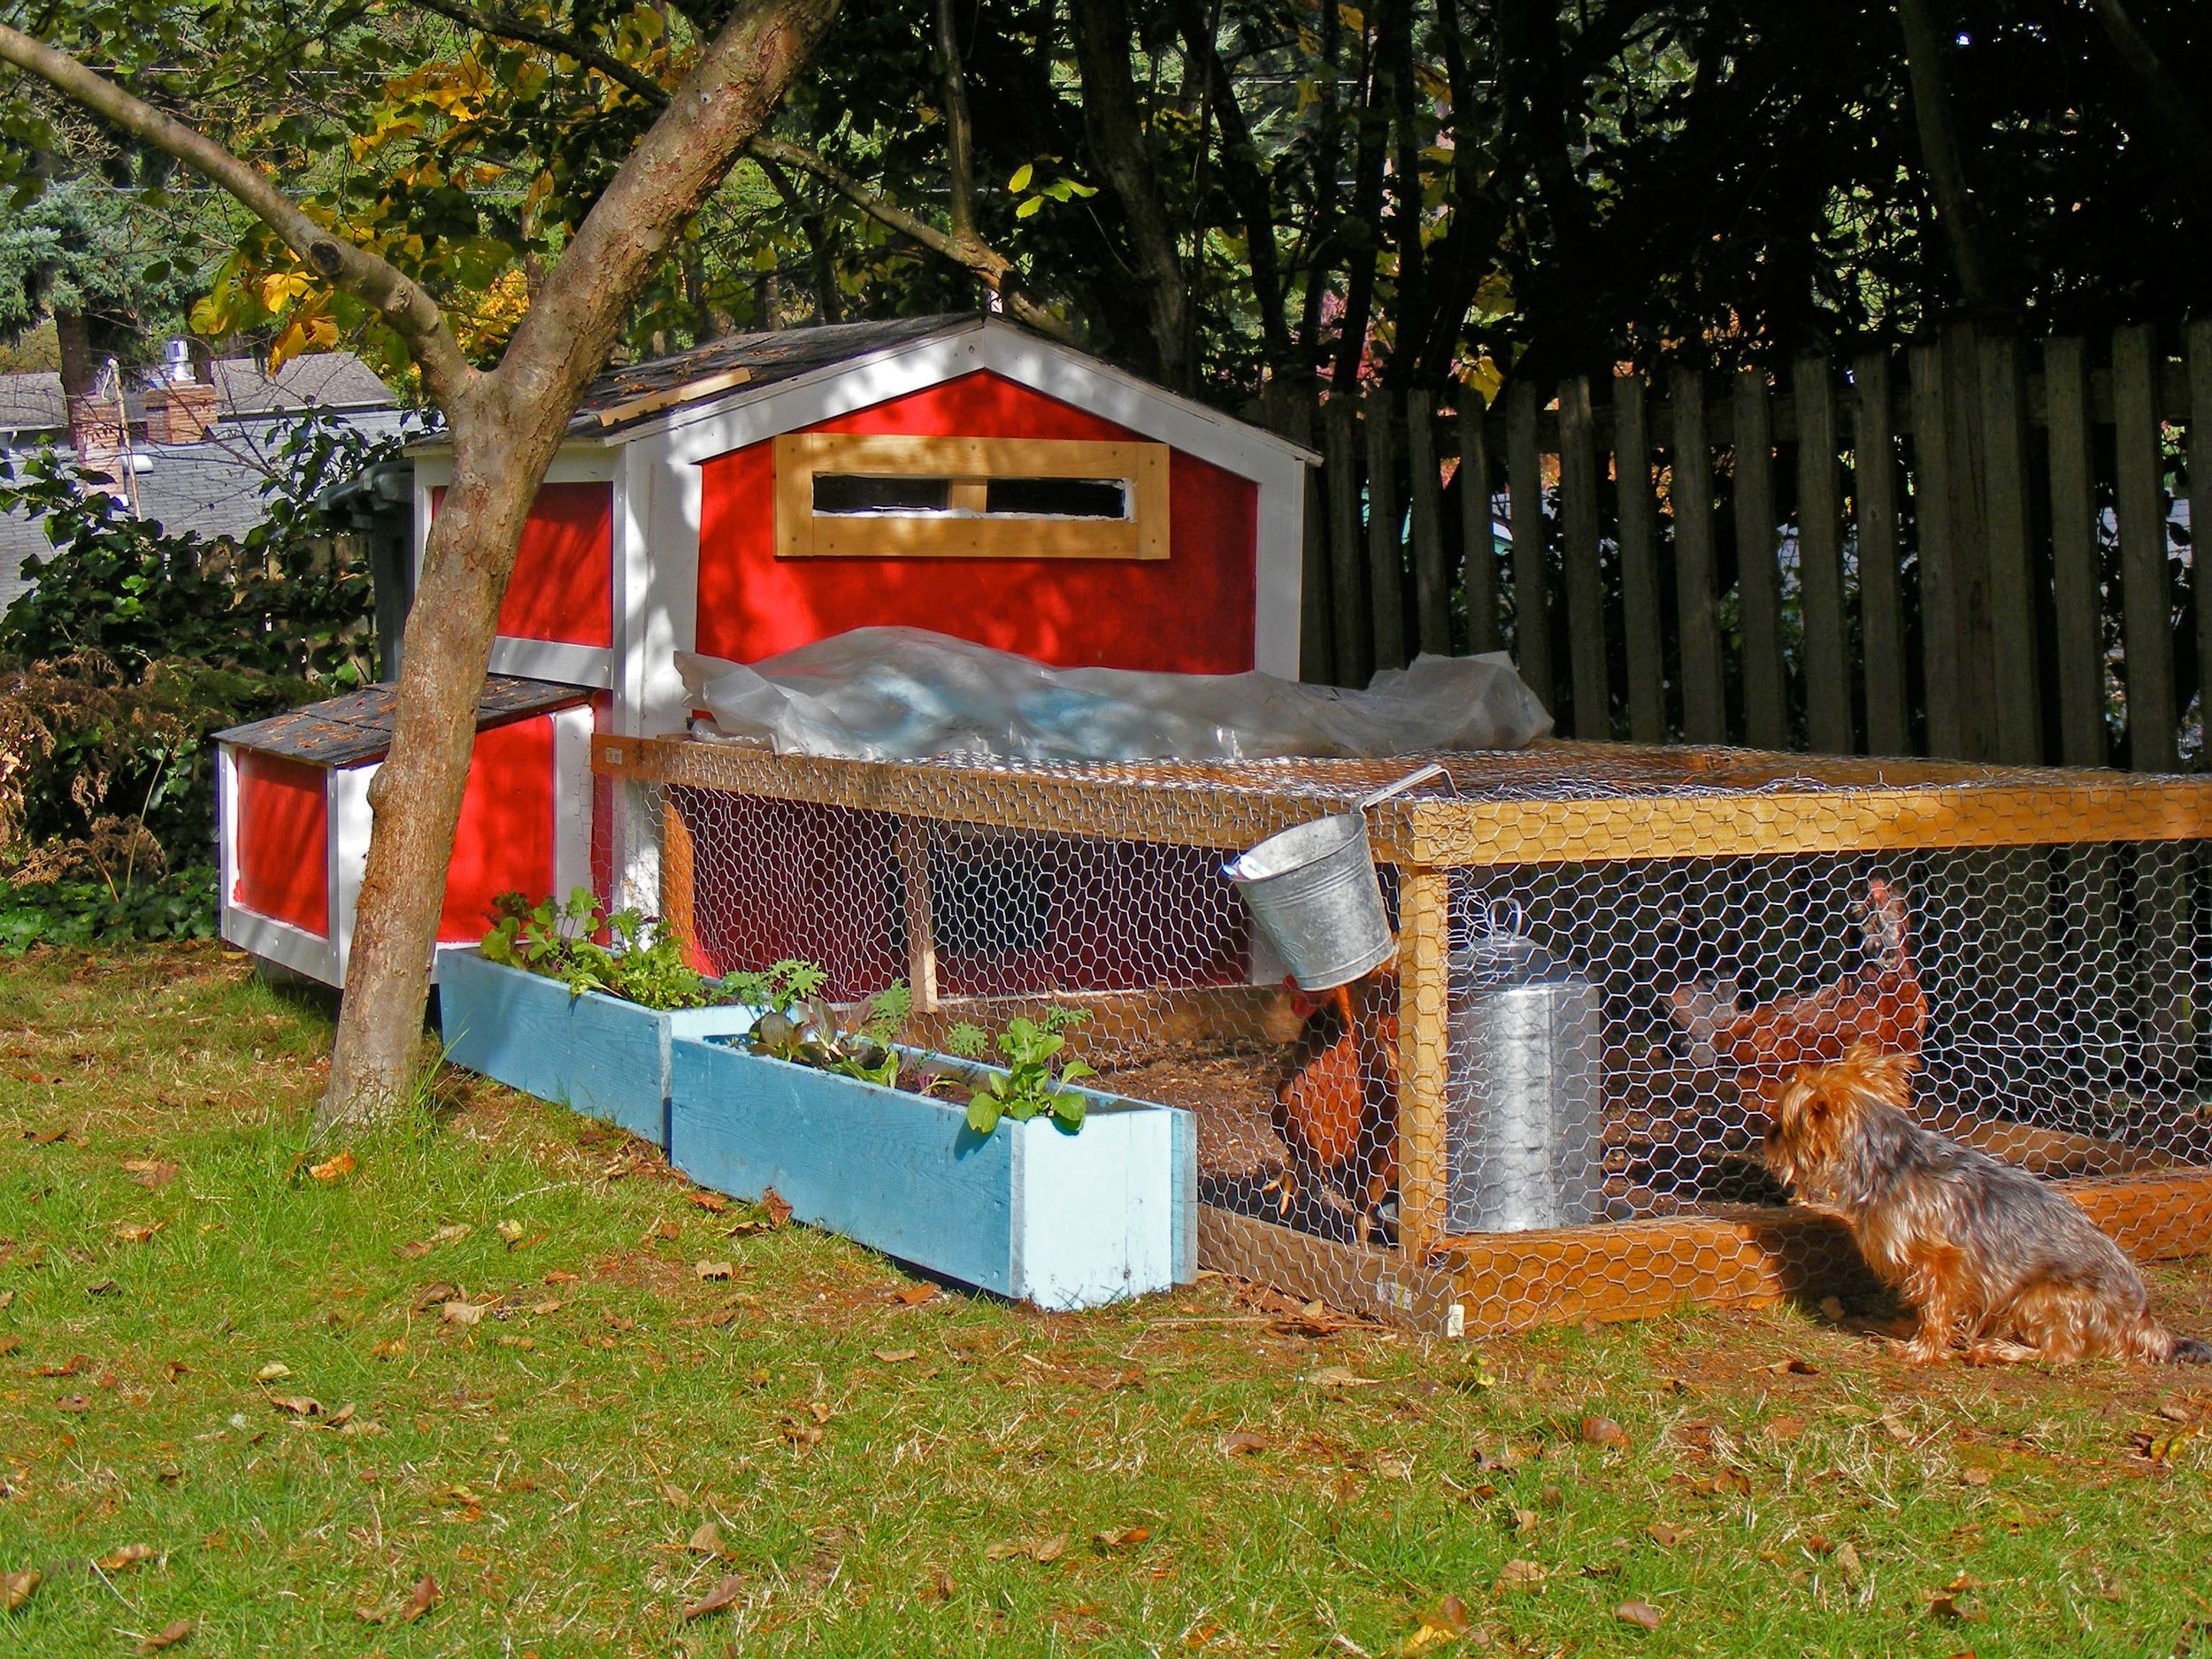 Molly and Chad's Chicken-Coop